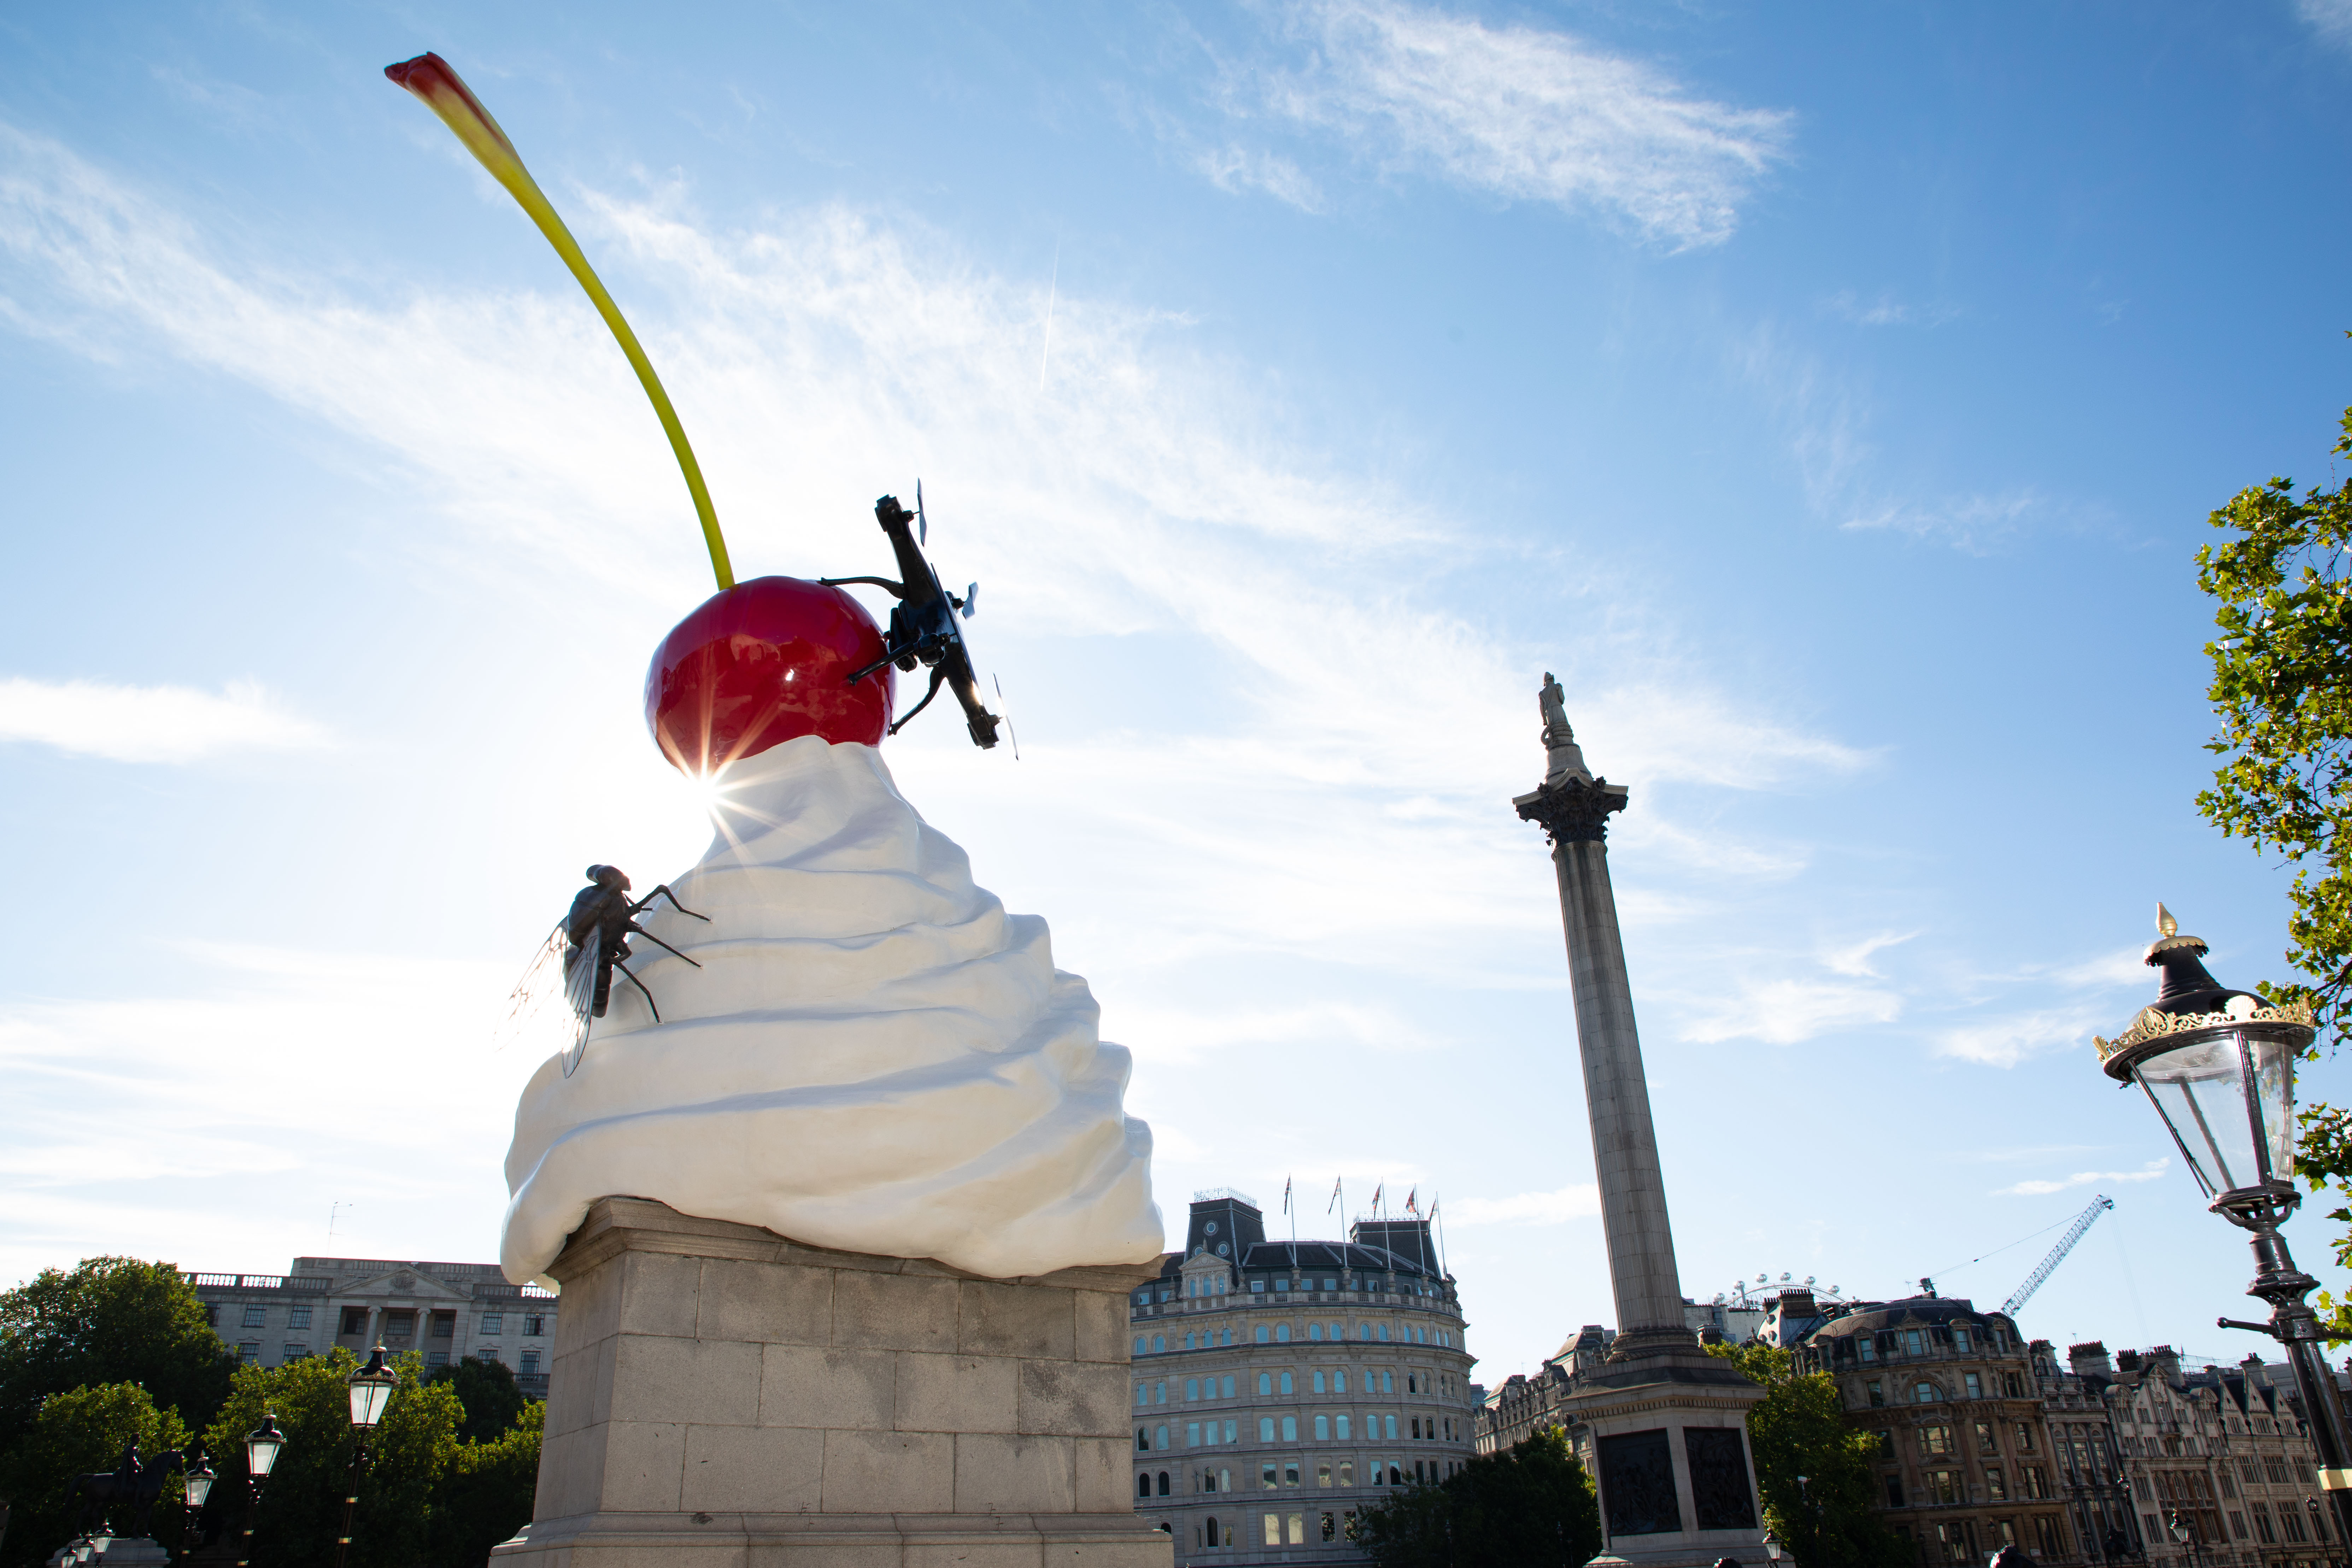 THE END reaches the Fourth Plinth